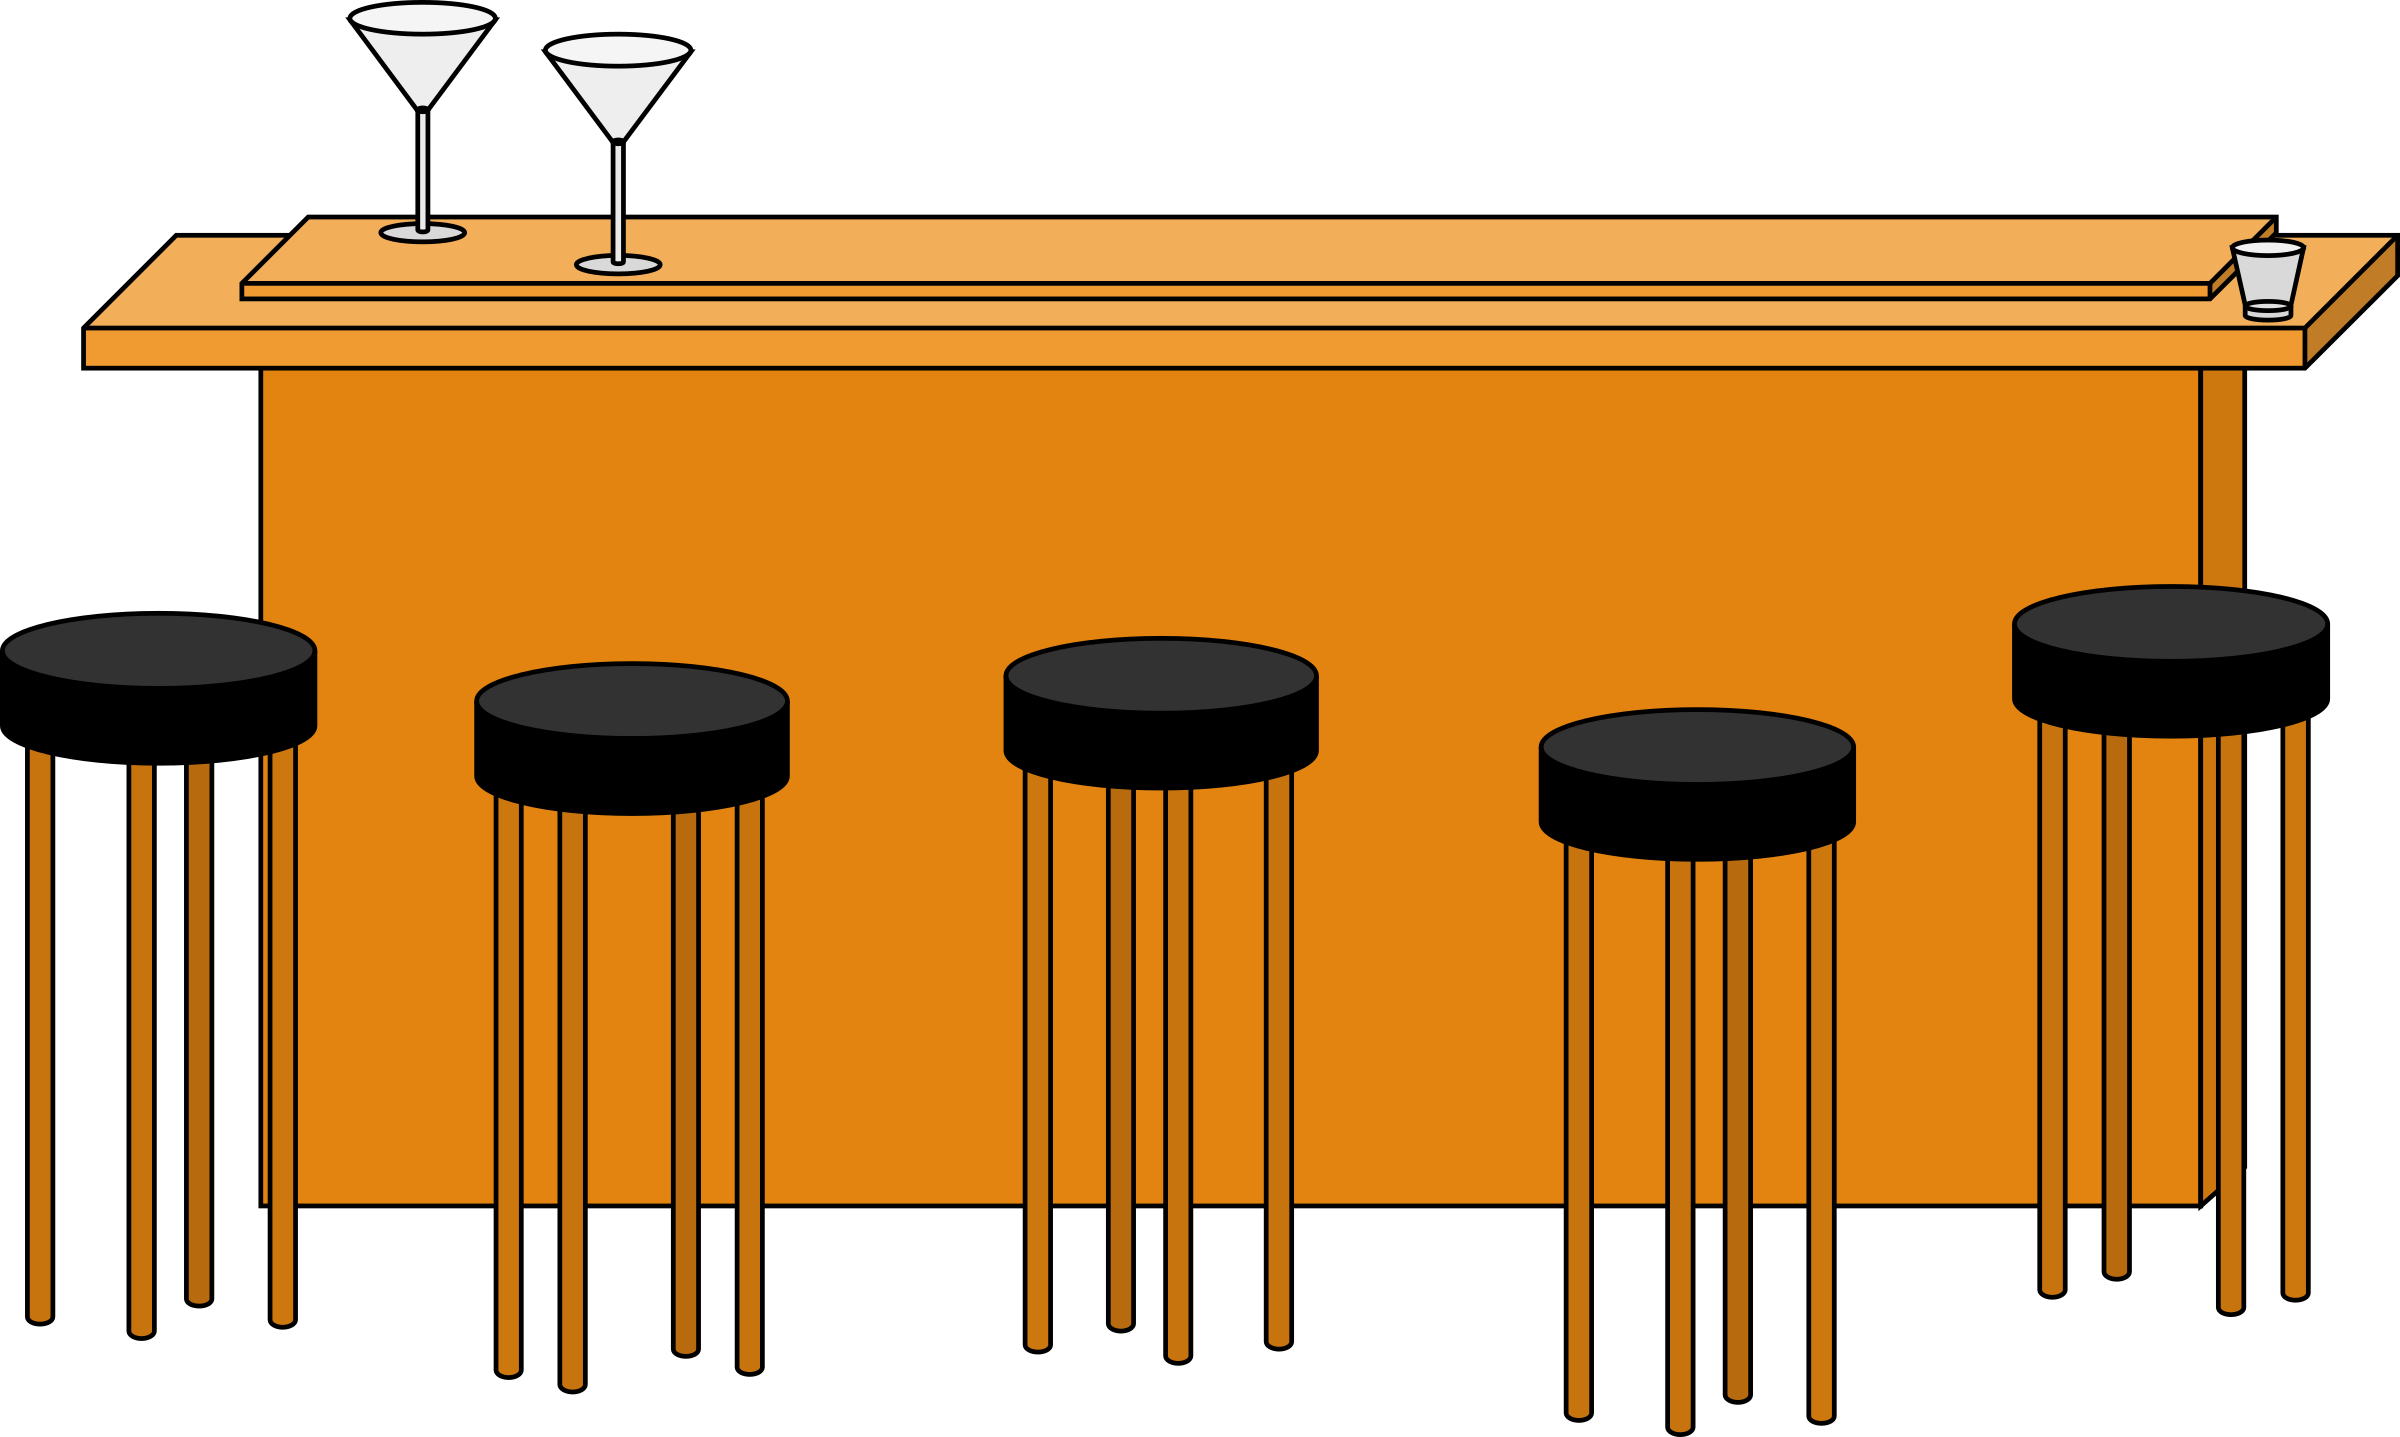 Clipart Bar With Stools